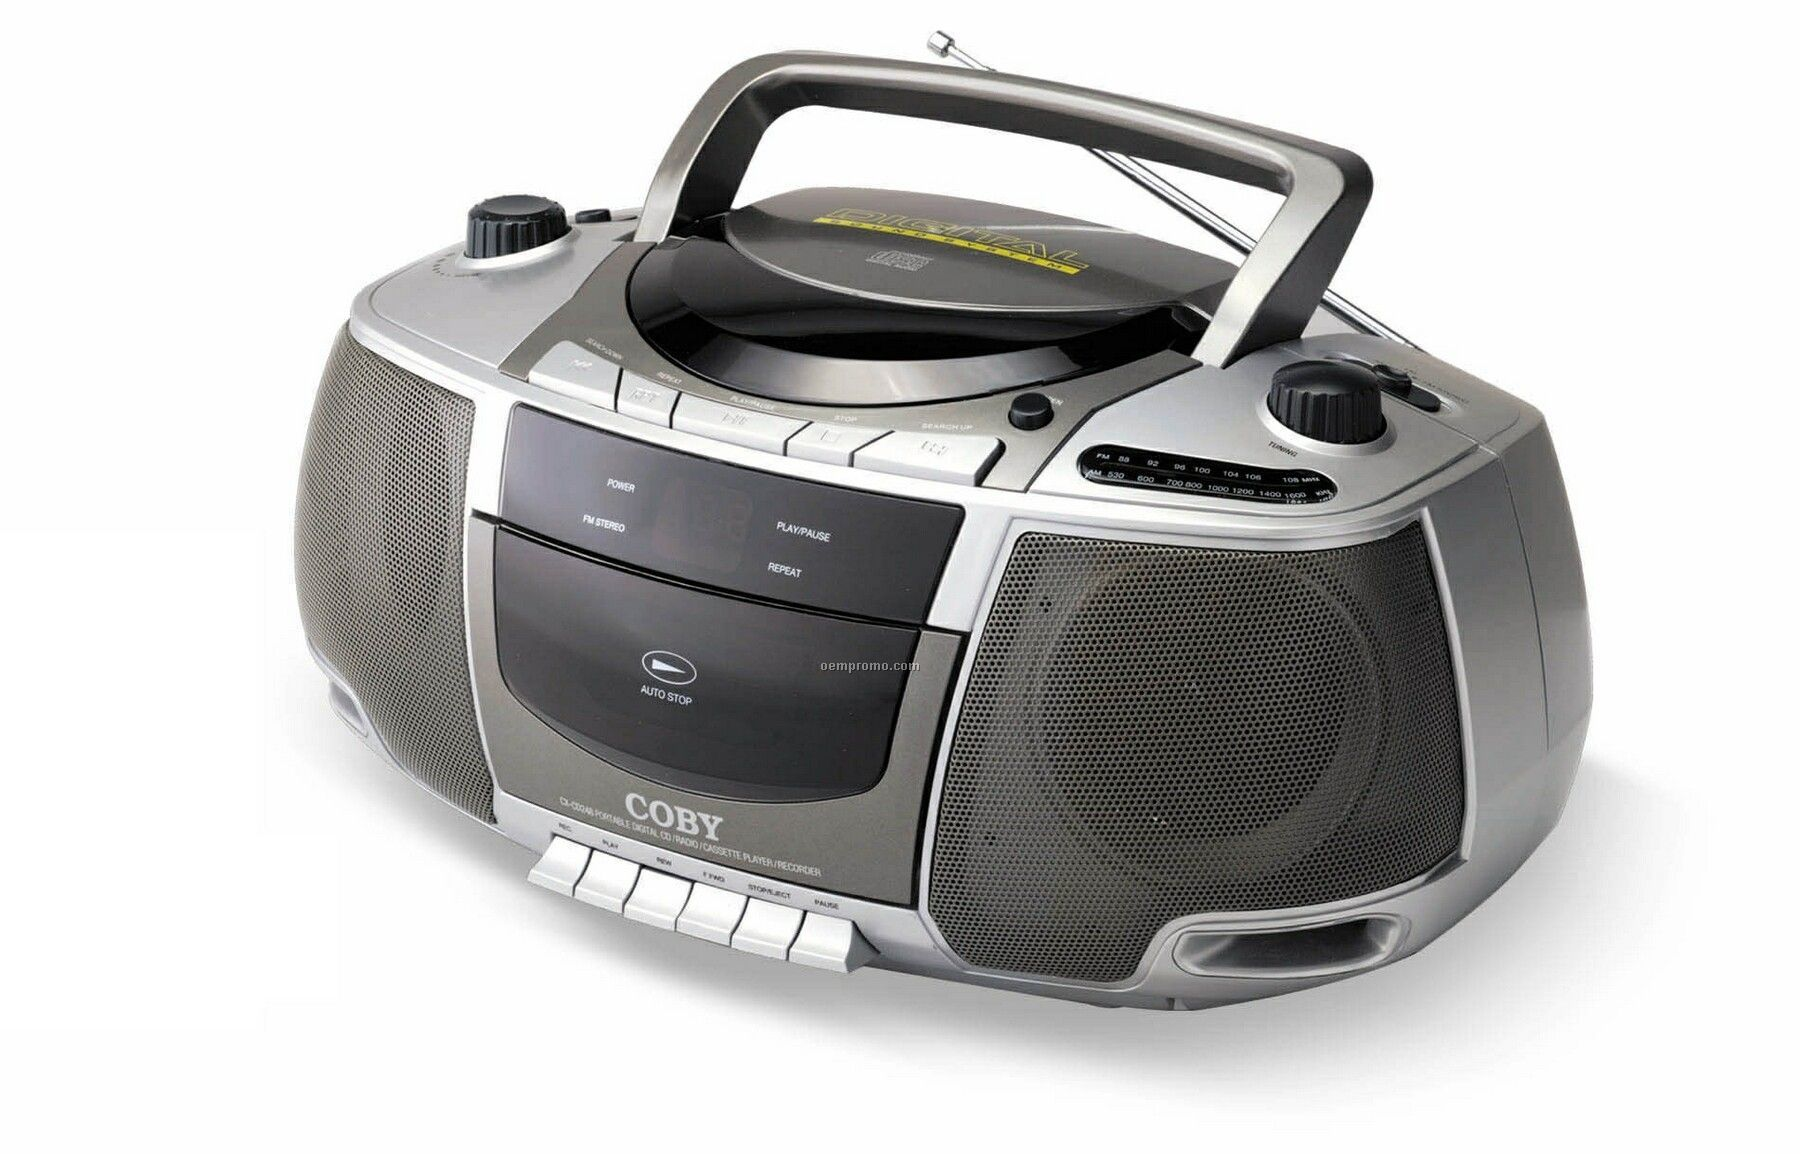 Coby Portable CD Radio Cassette Player Recorder 305693 on coby portable cassette player